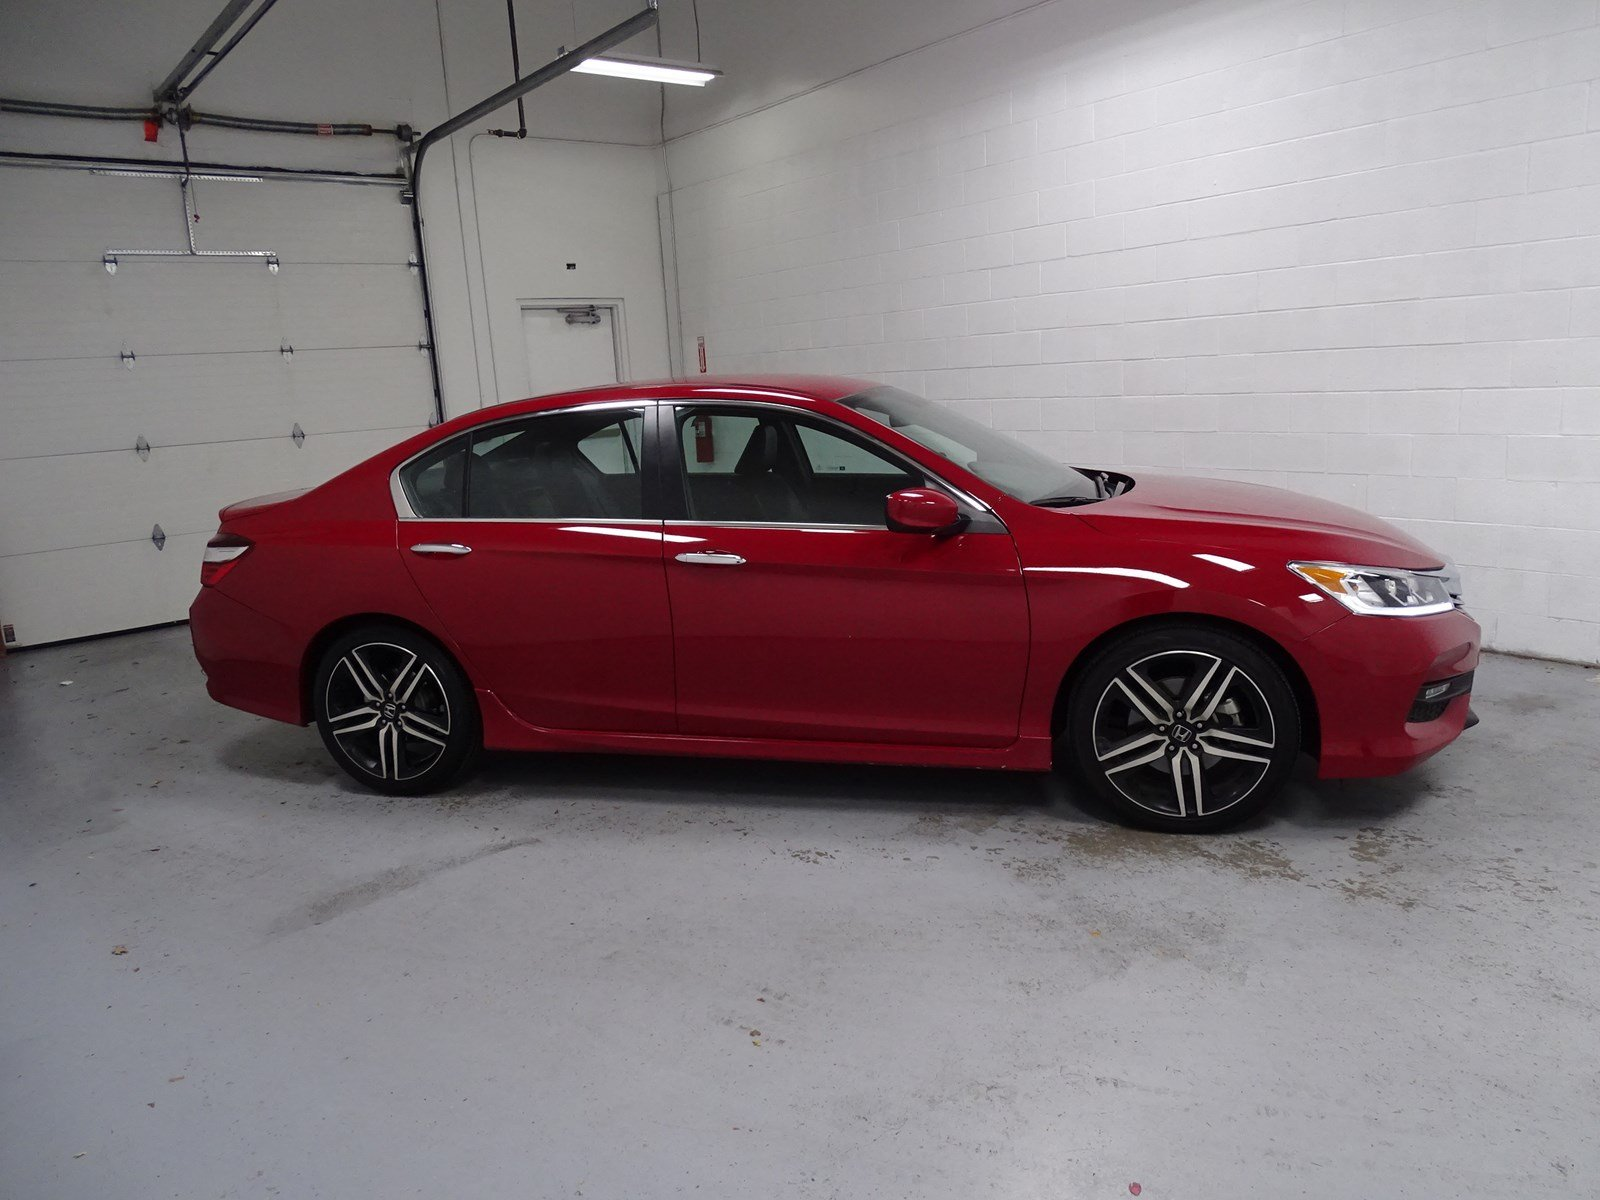 Pre Owned 2017 Honda Accord Sedan Sport 4dr Car in WEST VALLEY CITY